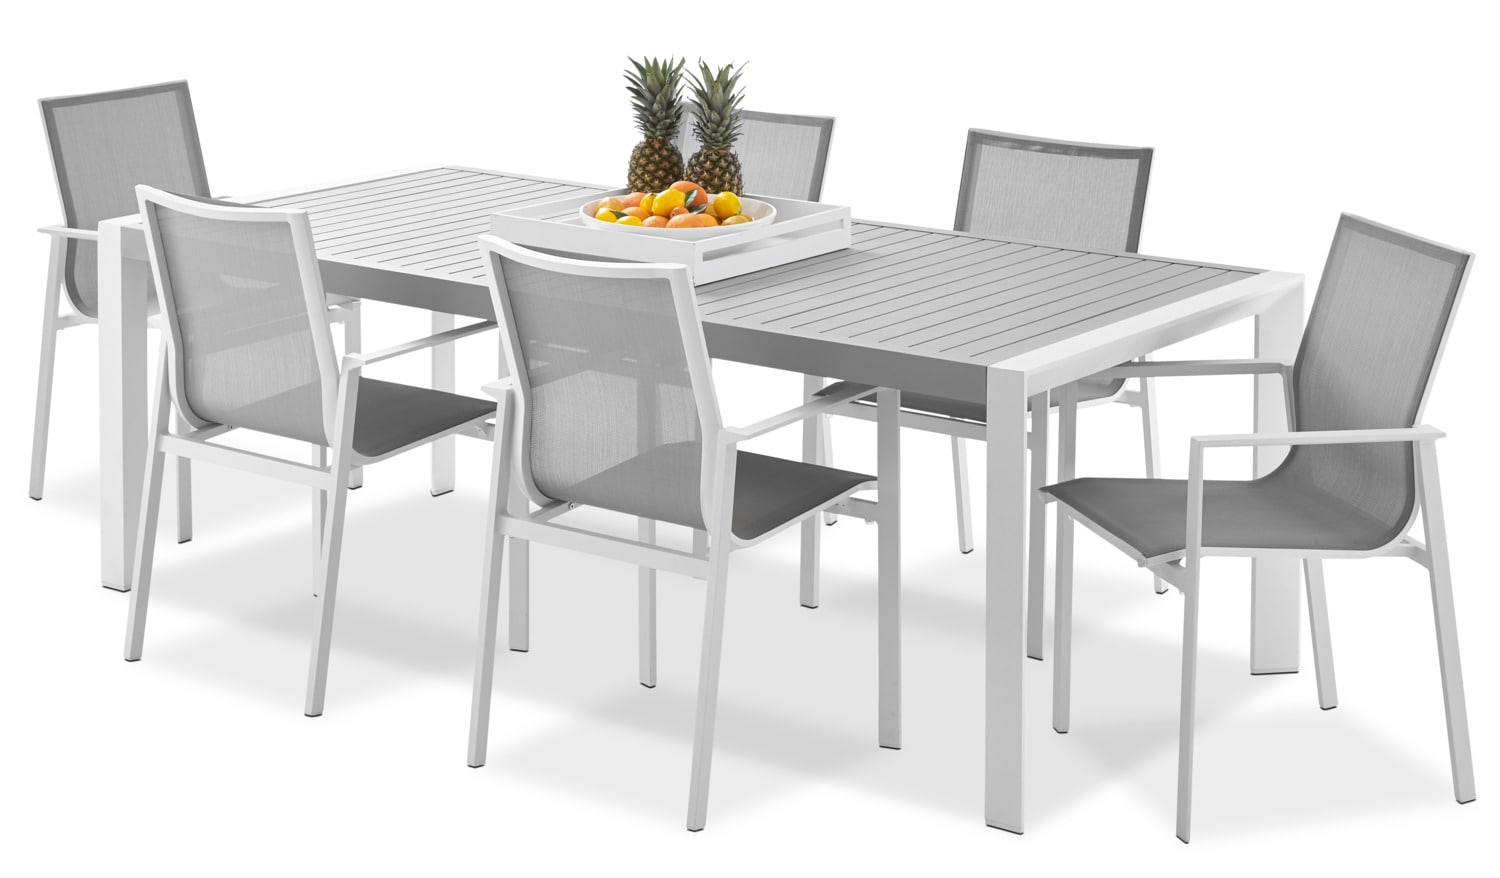 Biscayne 7-Piece Outdoor Dining Set - Light Grey